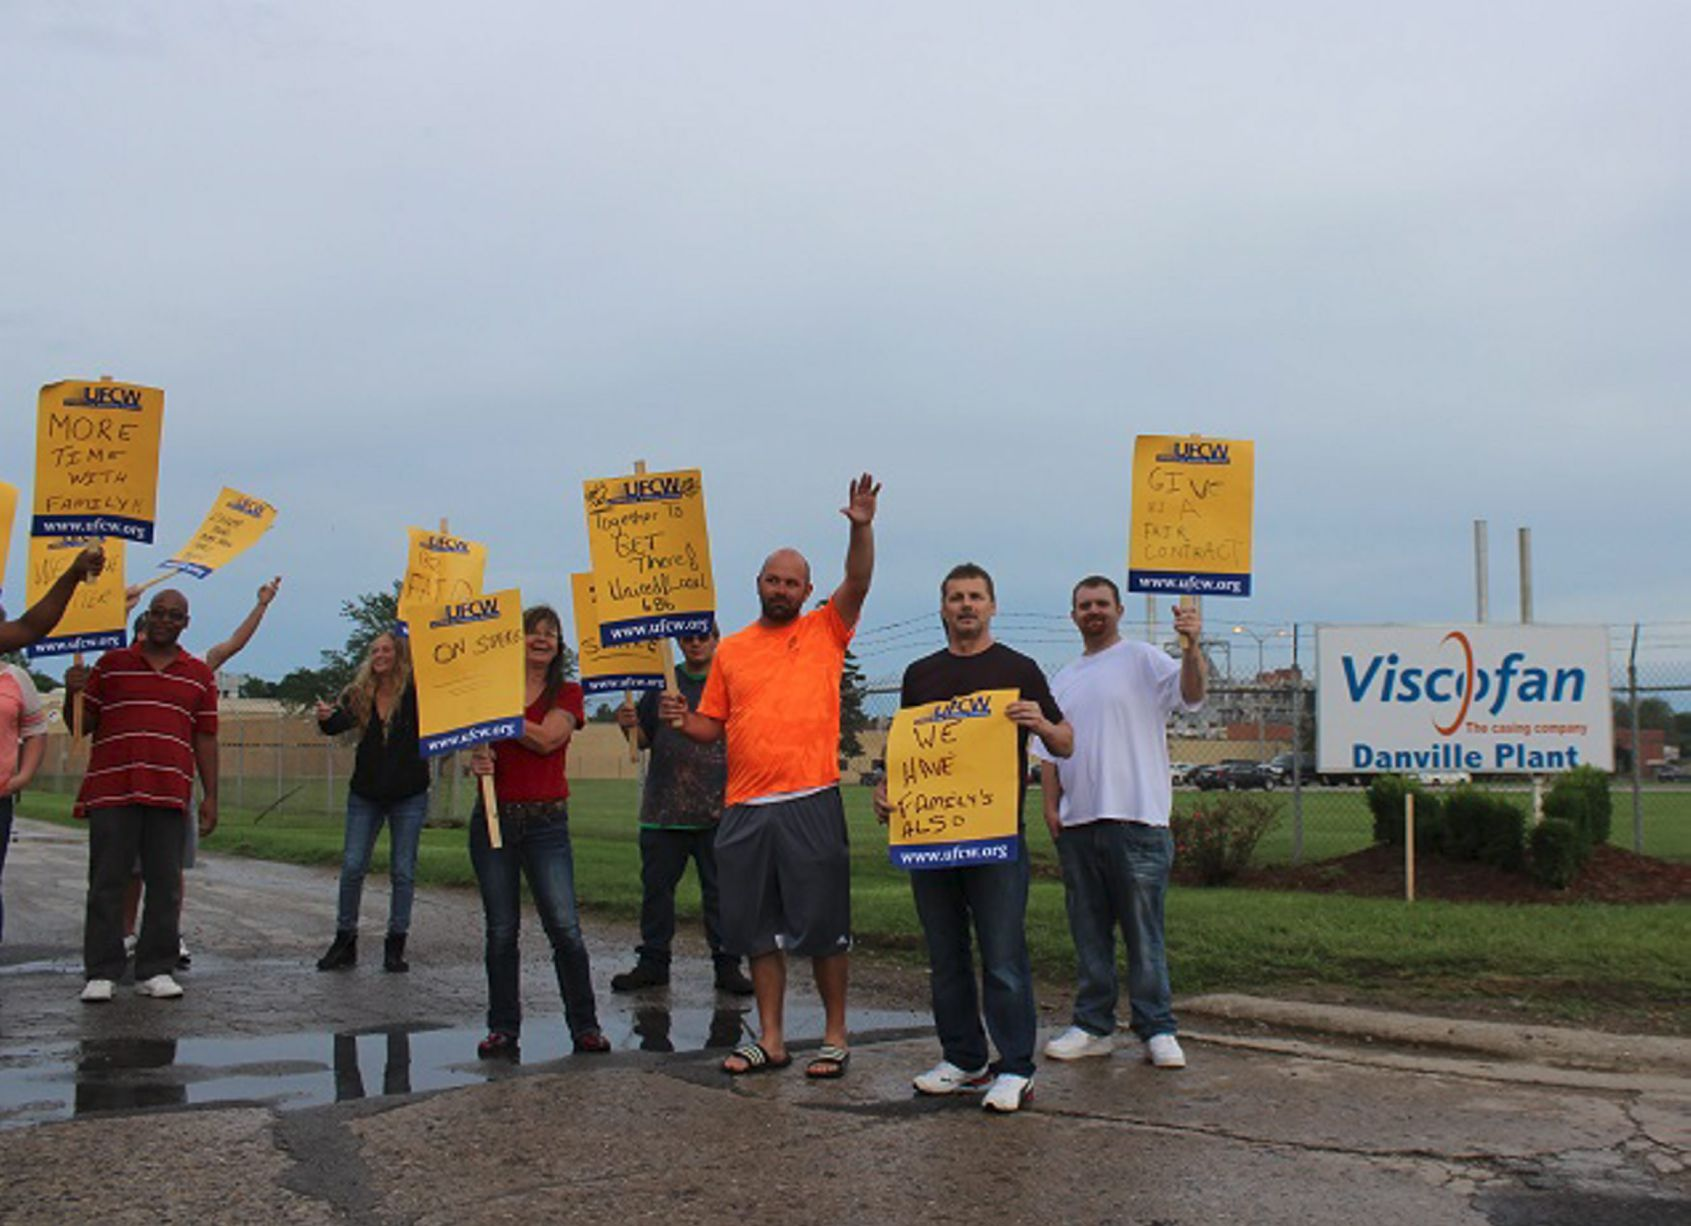 Danville Viscofan workers go on strike over wage freeze, short-notice overtime